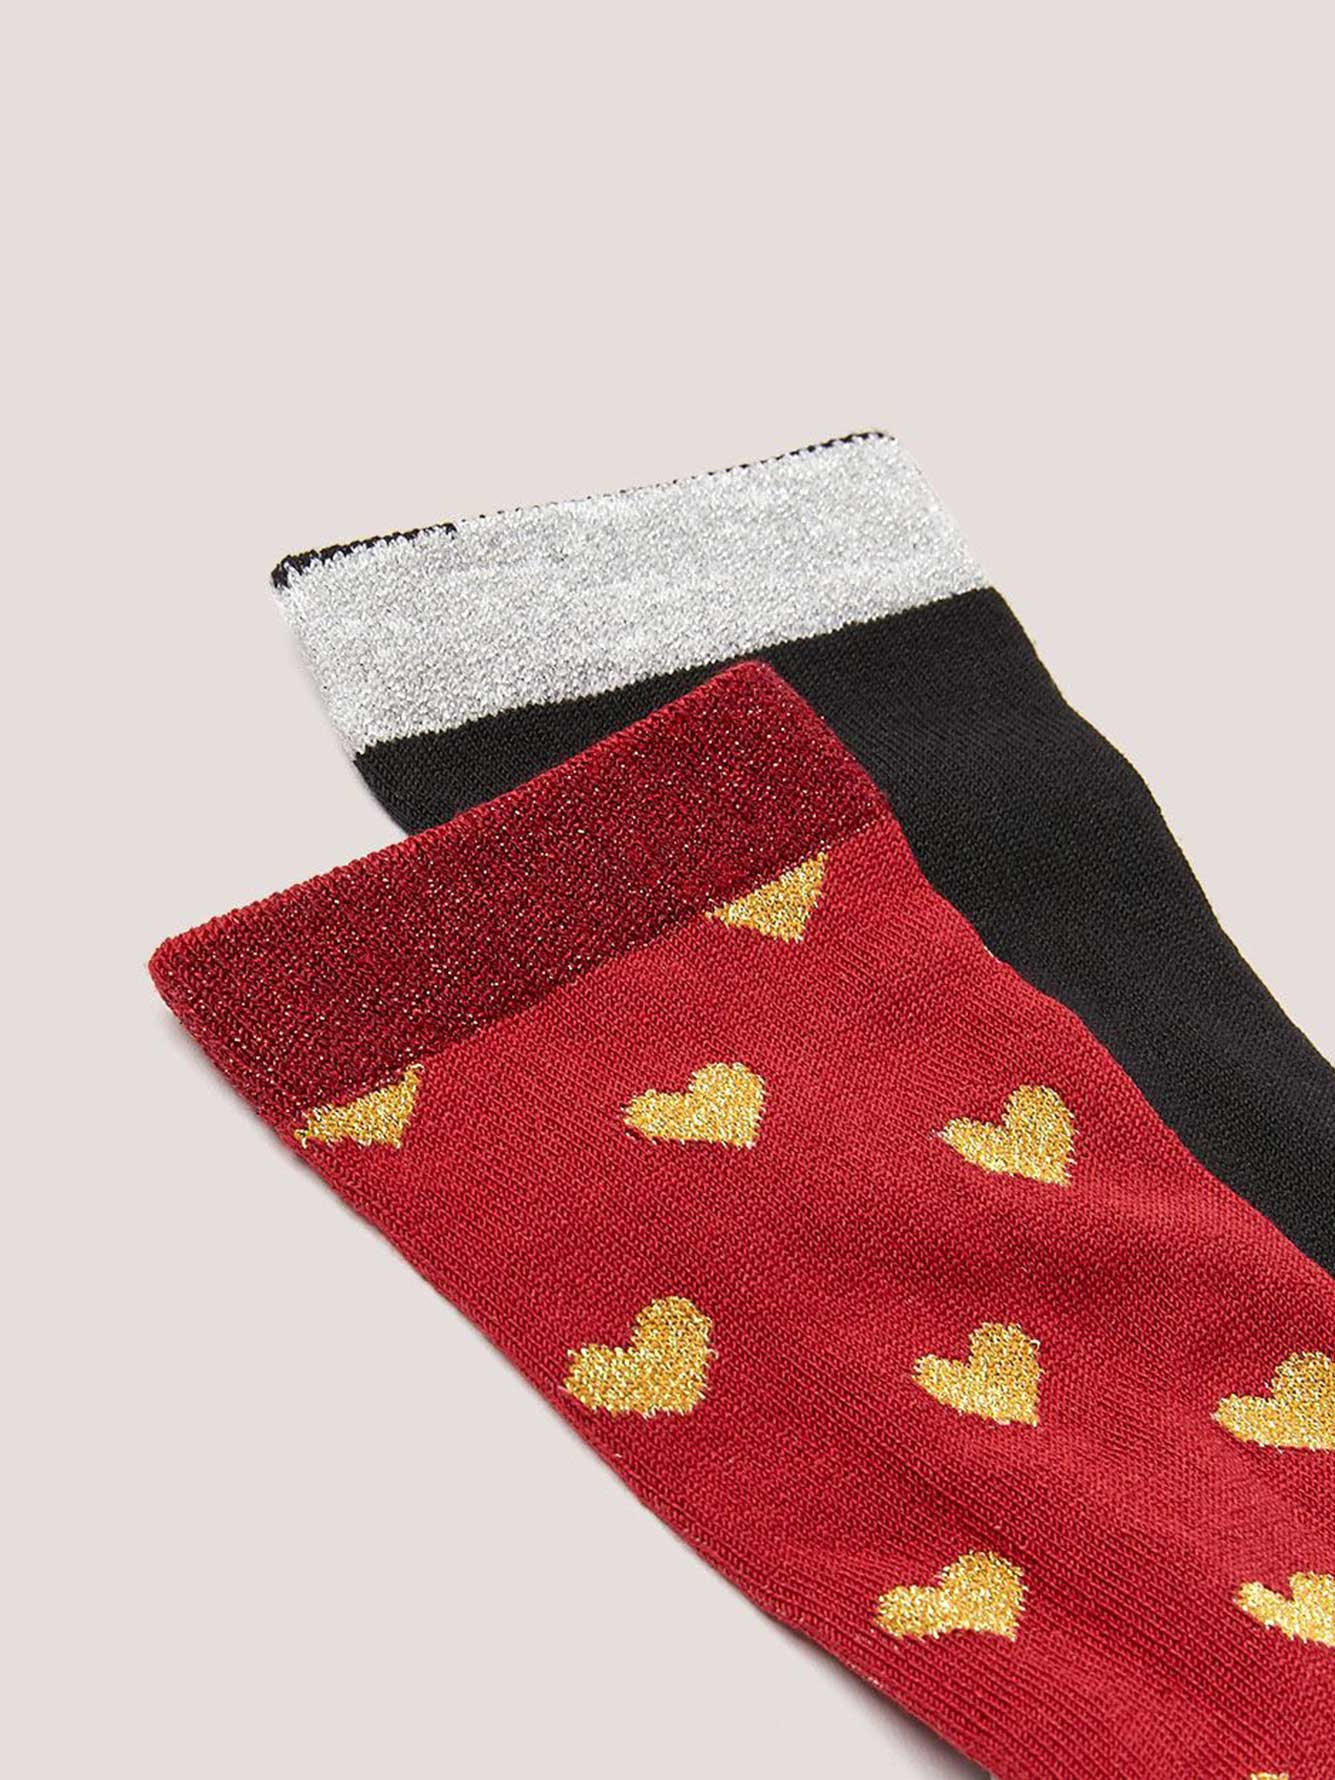 2 Pairs of Lurex Socks with Heart Motif